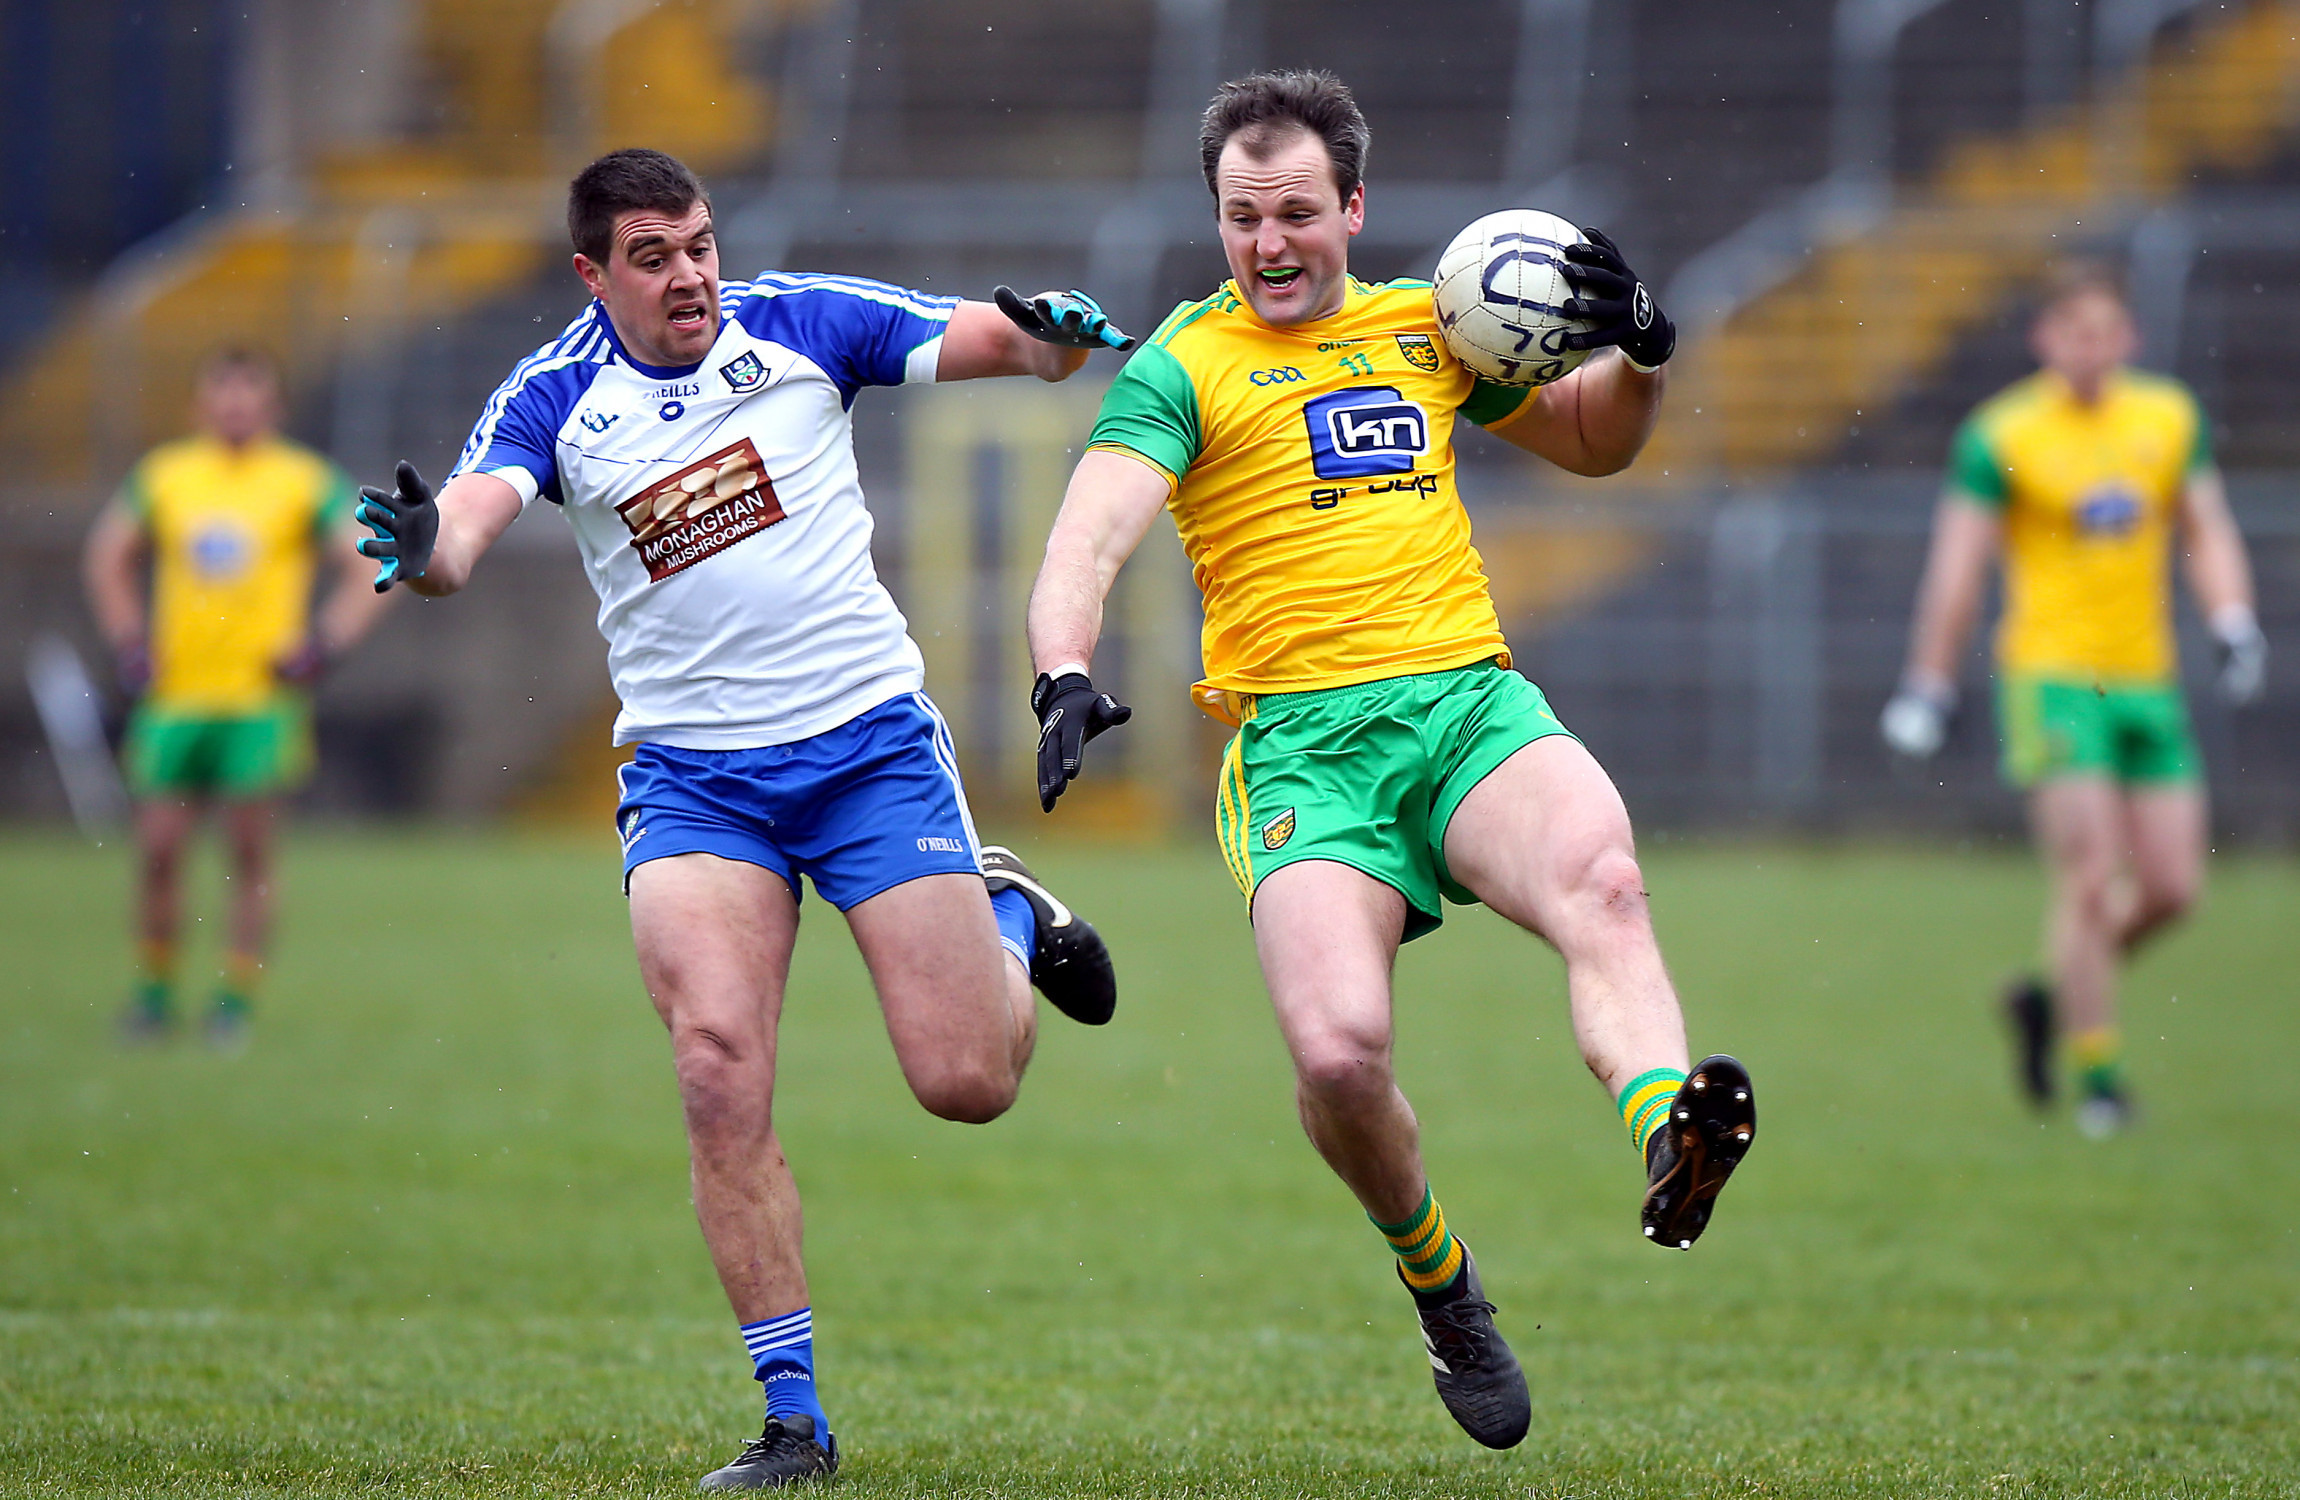 Monaghan prove too strong for Donegal in Clones